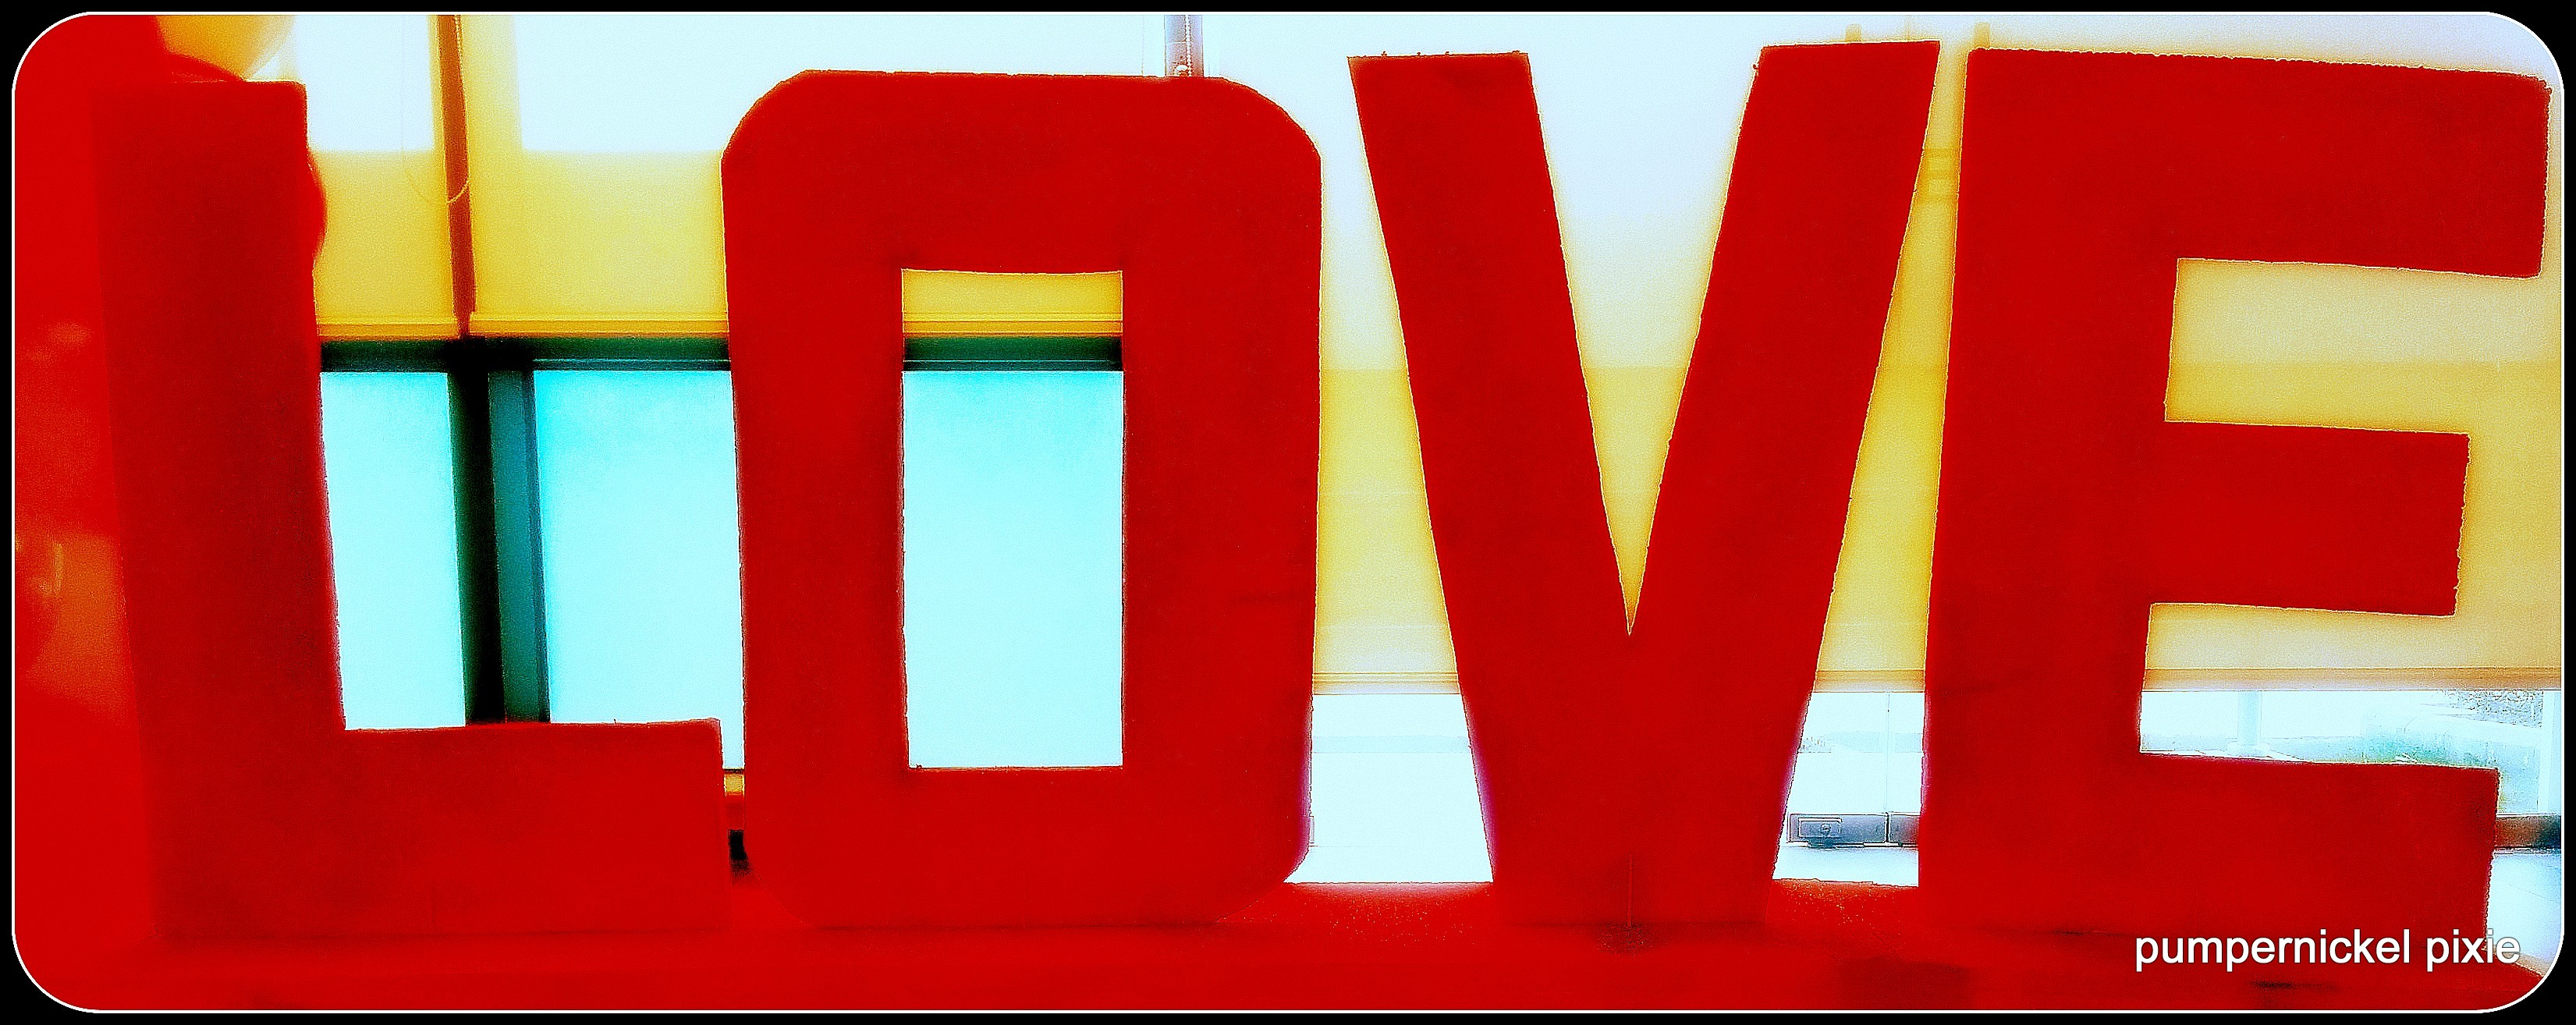 love photography love sign one week one photo on pumpernickel pixie